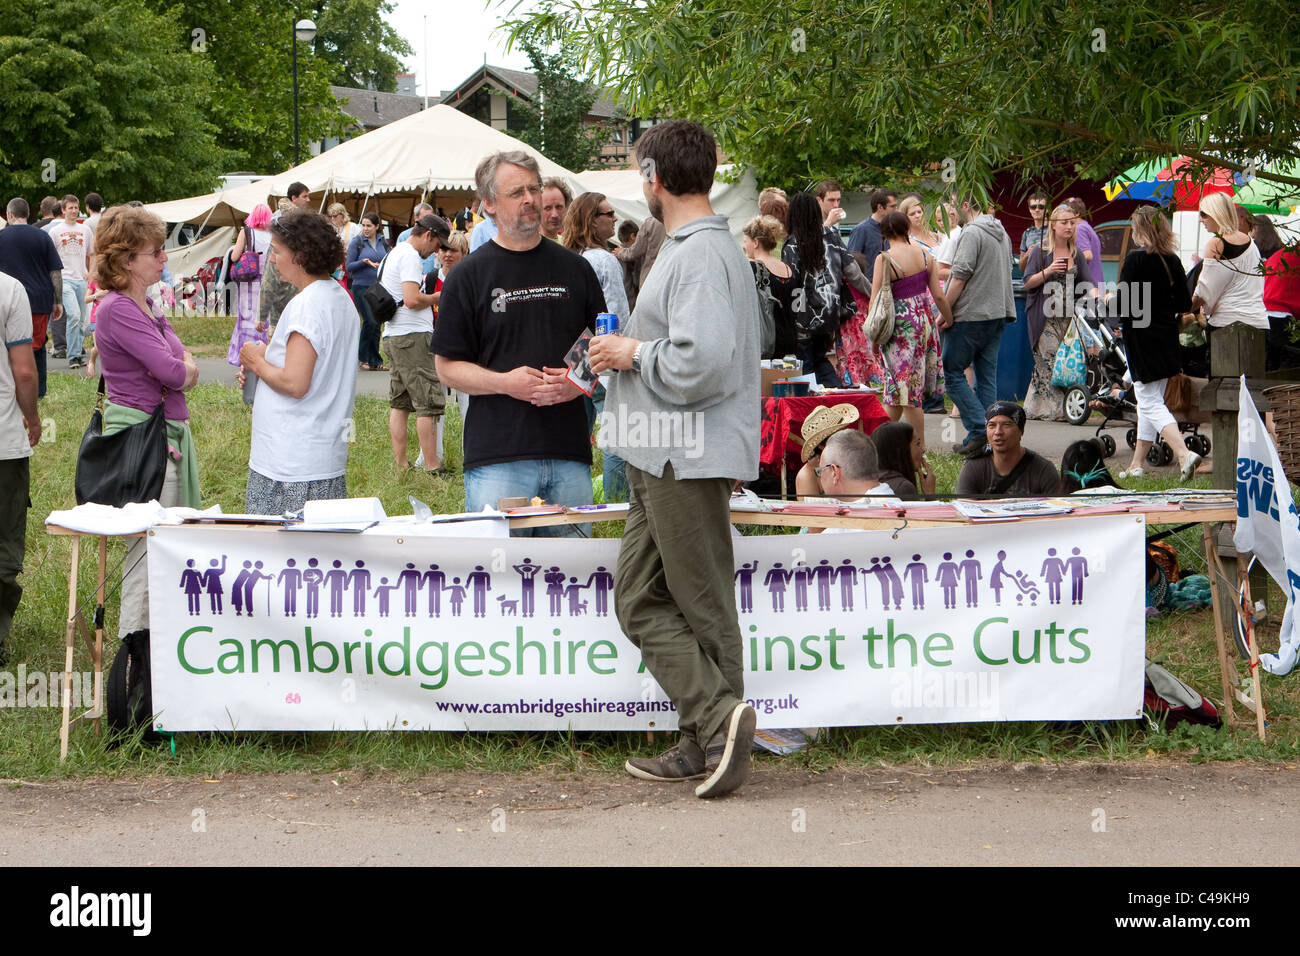 Stall of a campaign group against government cuts at the Cambridge Strawberry Fair in June 2011 - Stock Image